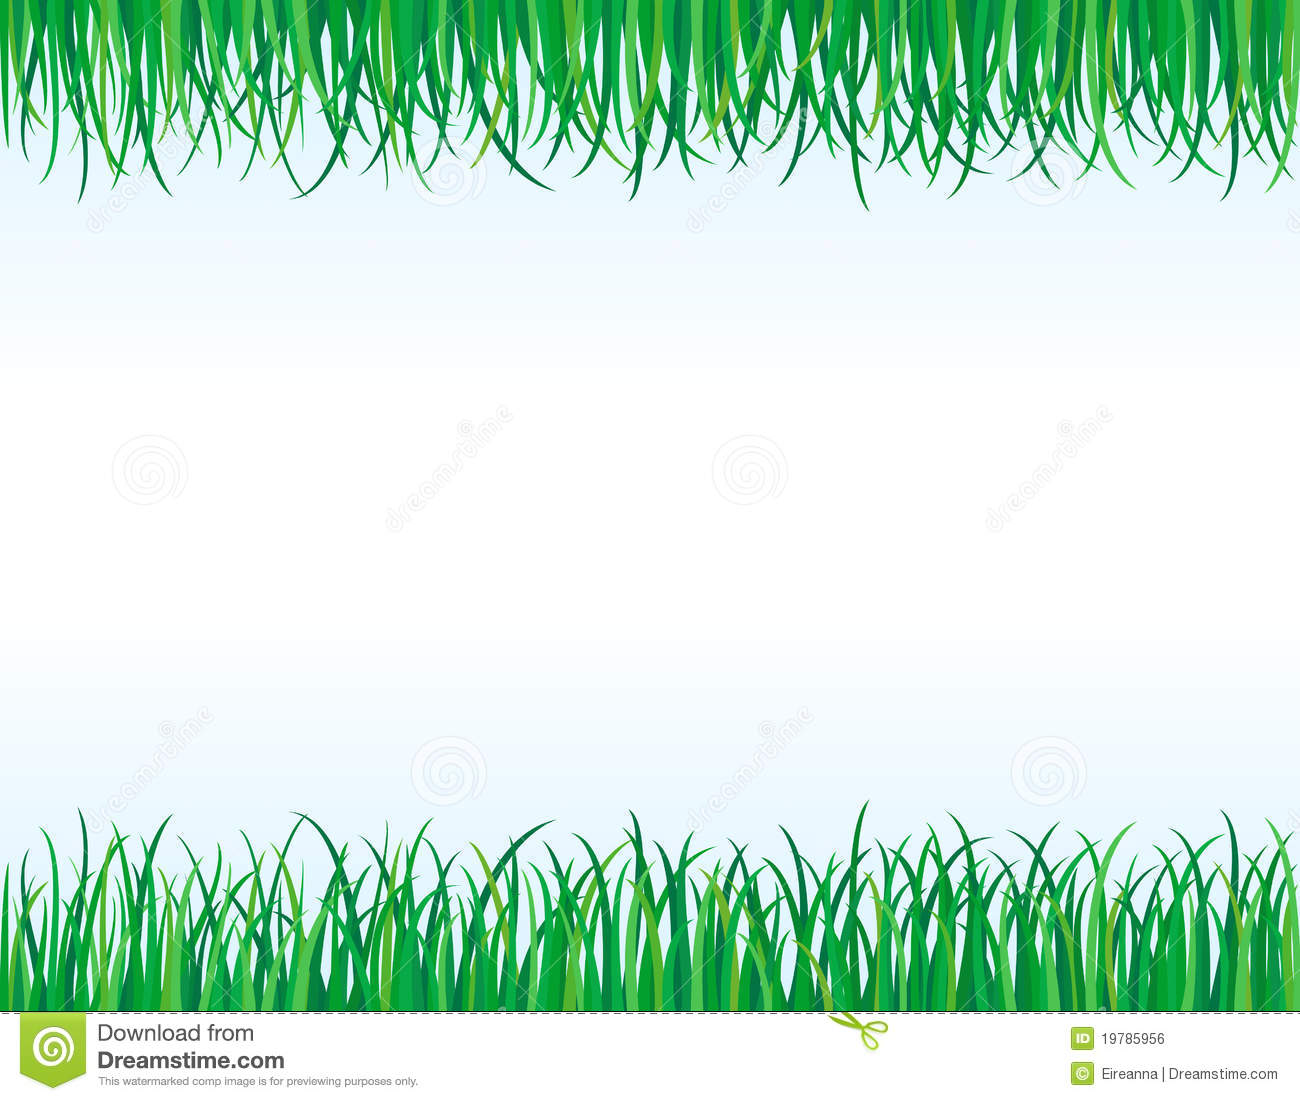 Clipart grass border the image kid has it for Best grasses for borders